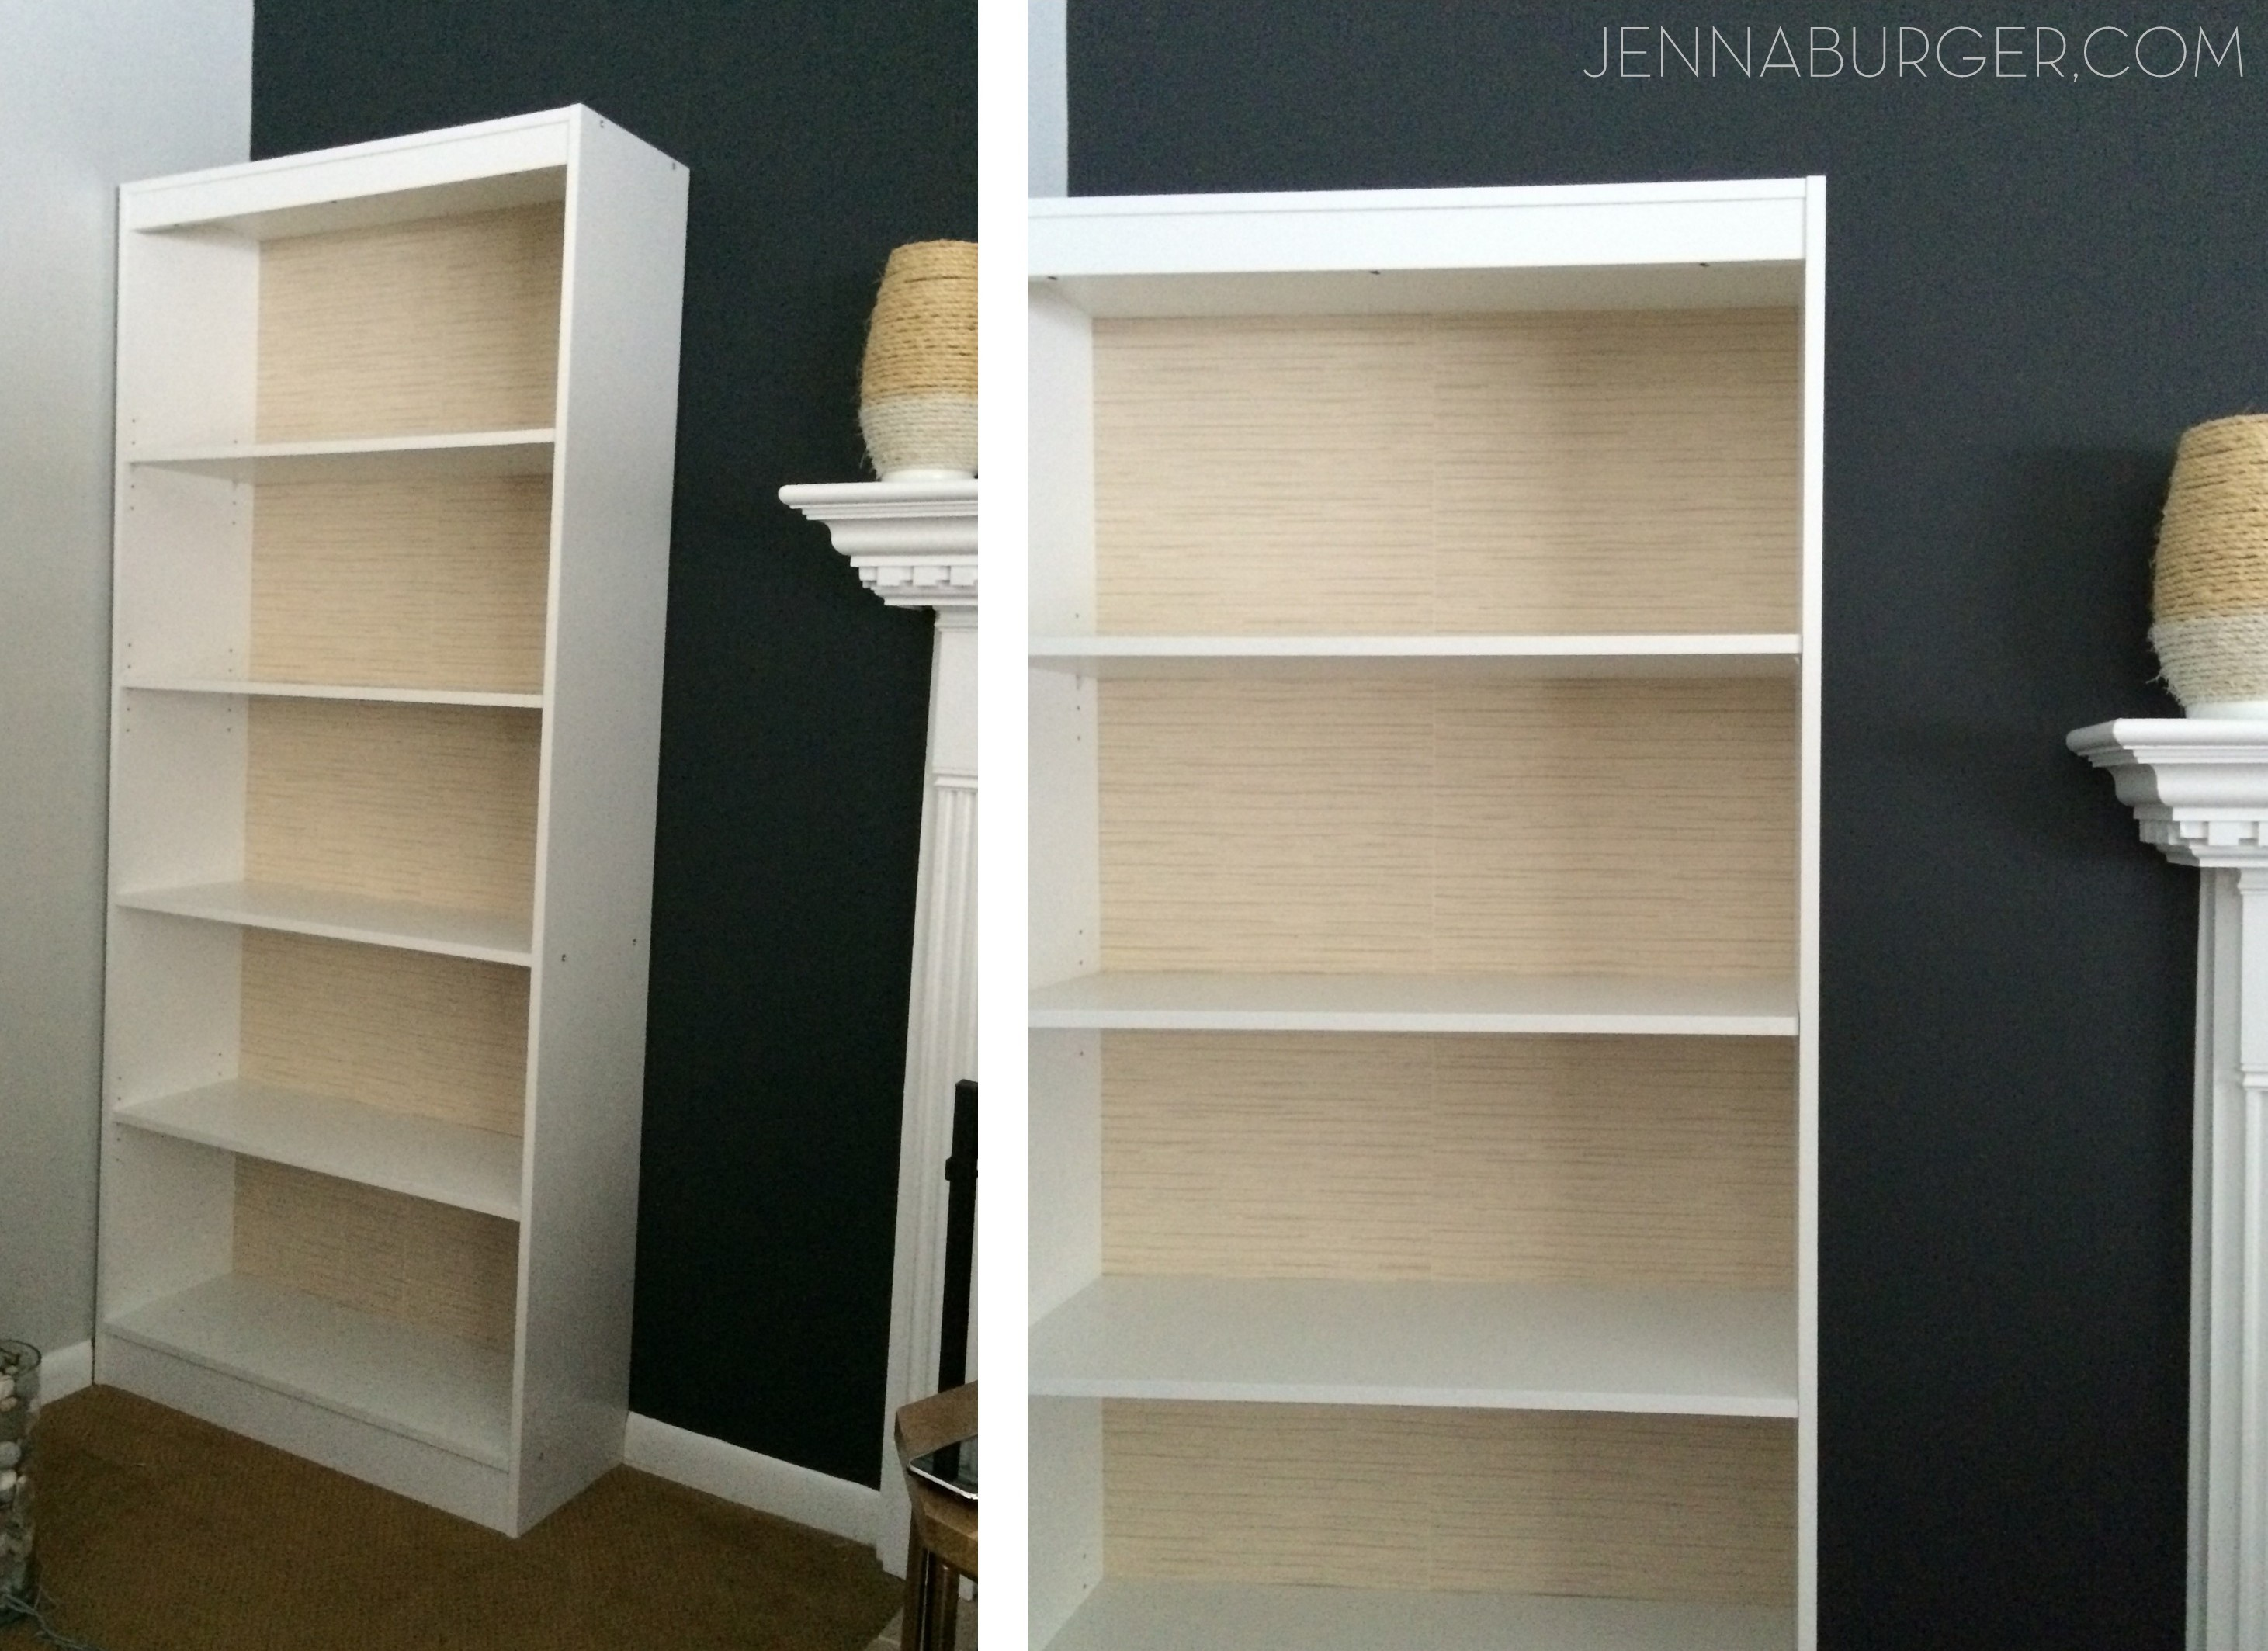 diy tutorial how to make a laminate bookcase look like a custom built - How To Make Custom Built In Bookshelves